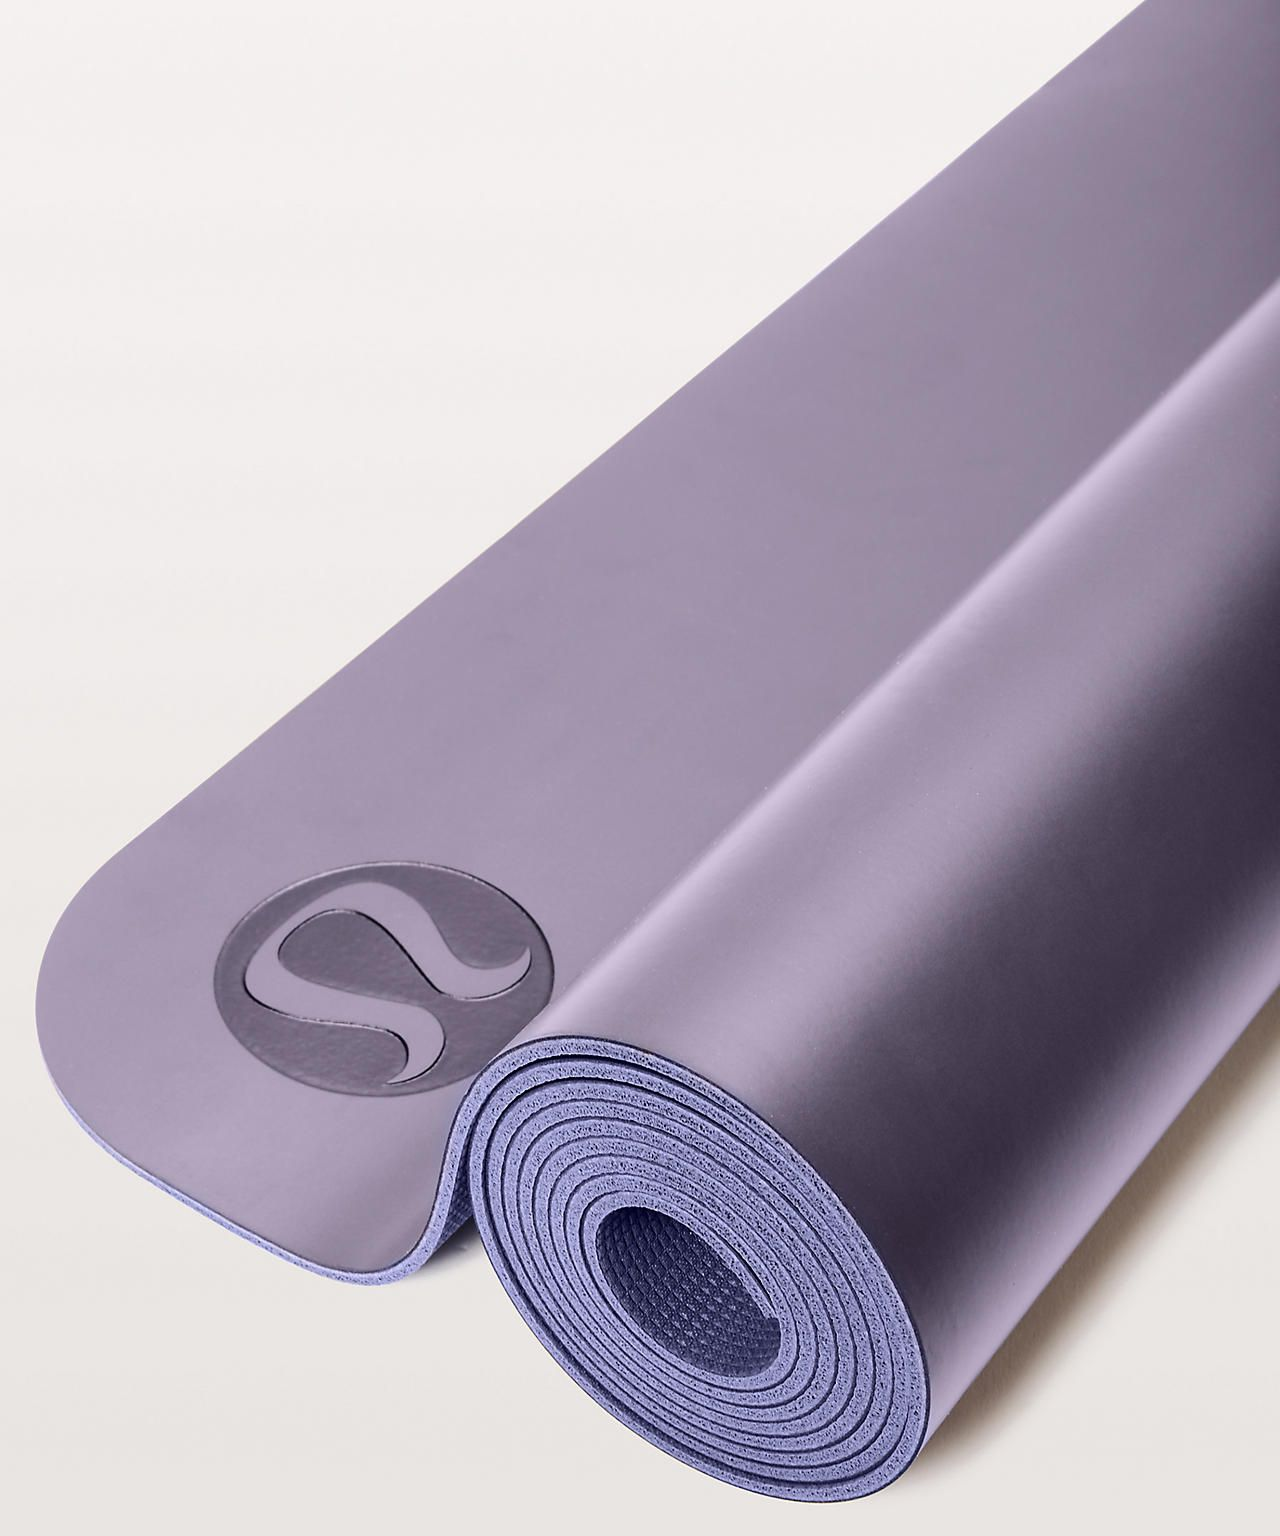 c86f38accb The reversible purple / blue yoga mat - LULULEMON | ⭐ CHRĪSTMĀS ...